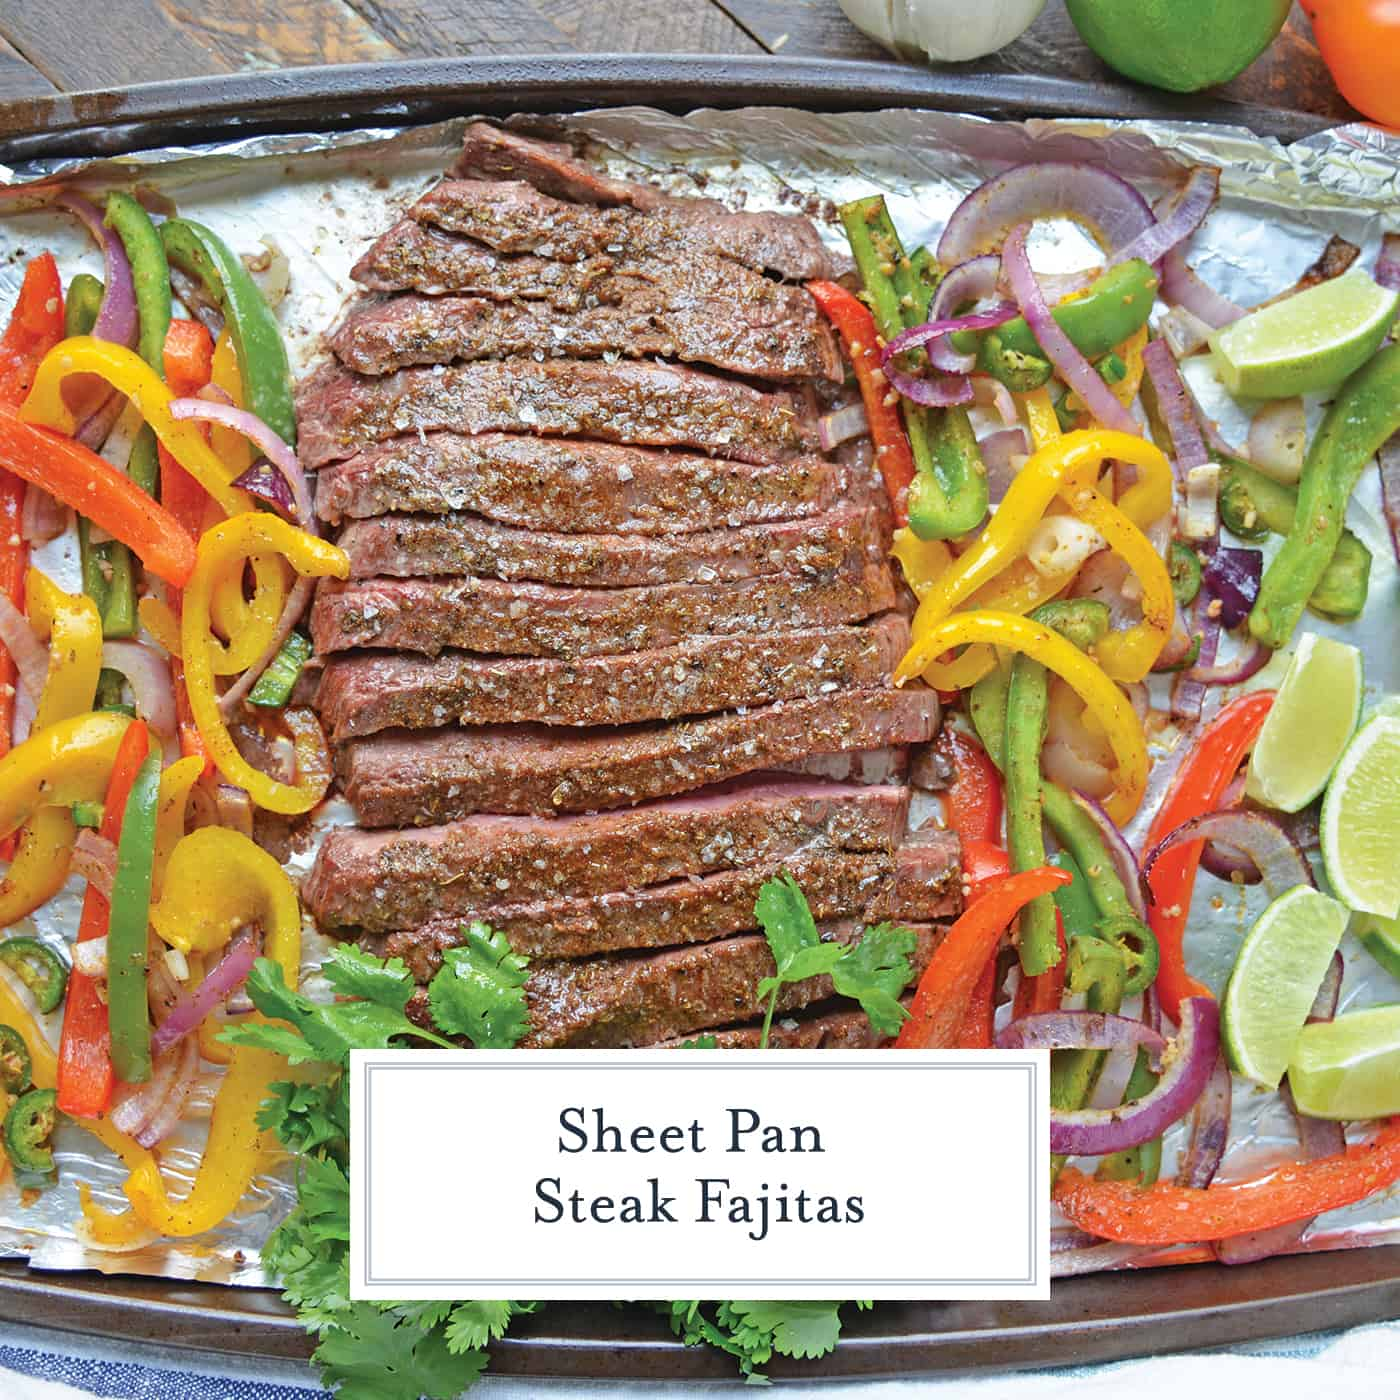 Sheet Pan Steak Fajitas are an easy weeknight meal using tender beef, homemade fajita seasoning, peppers, onions and jalapenos! #sheetpanrecipes #steakfajitas #easydinnerideas www.savoryexperiments.com